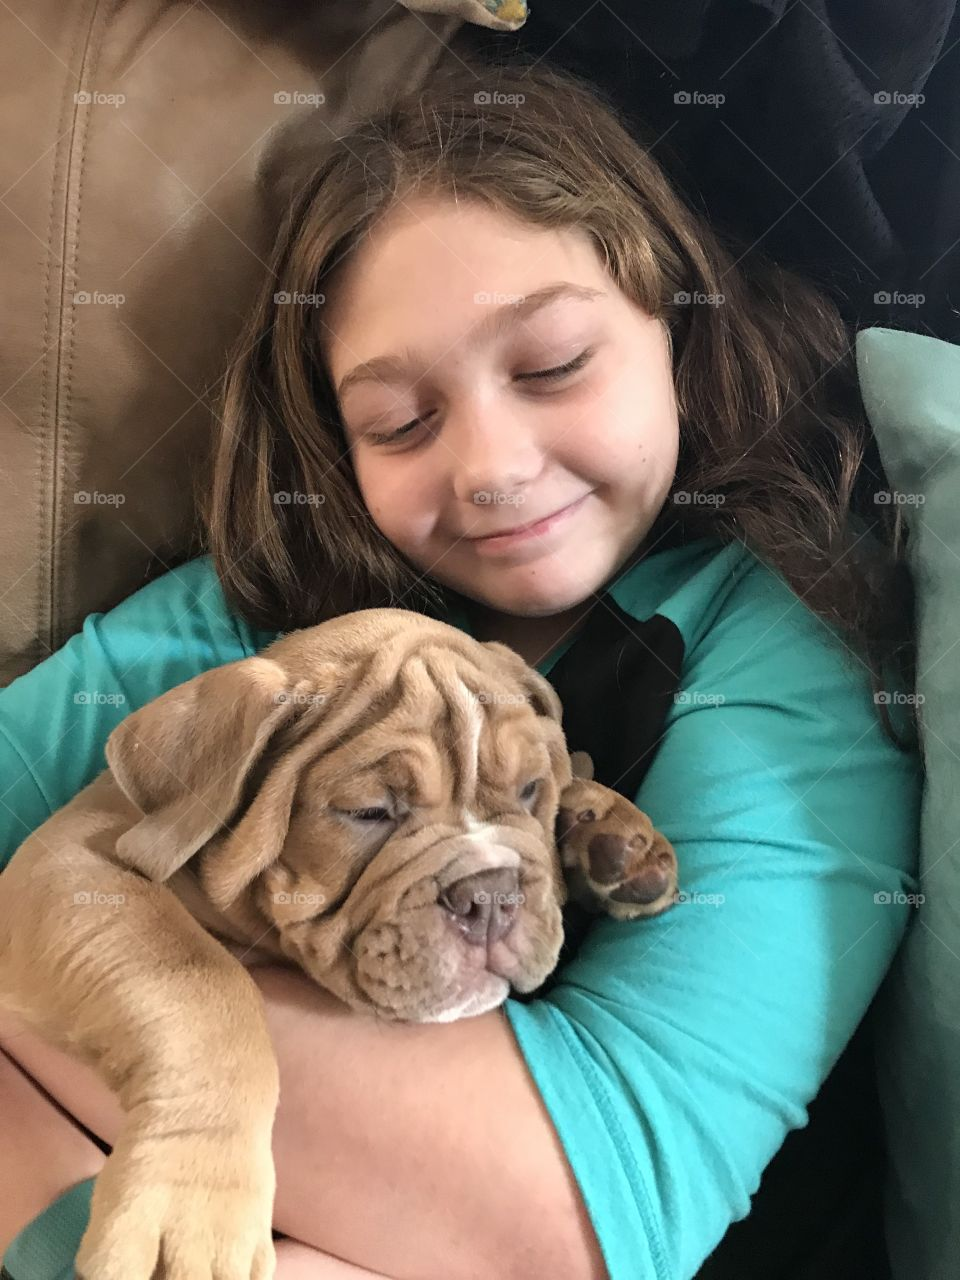 A little girl happily loving her new bulldog puppy.